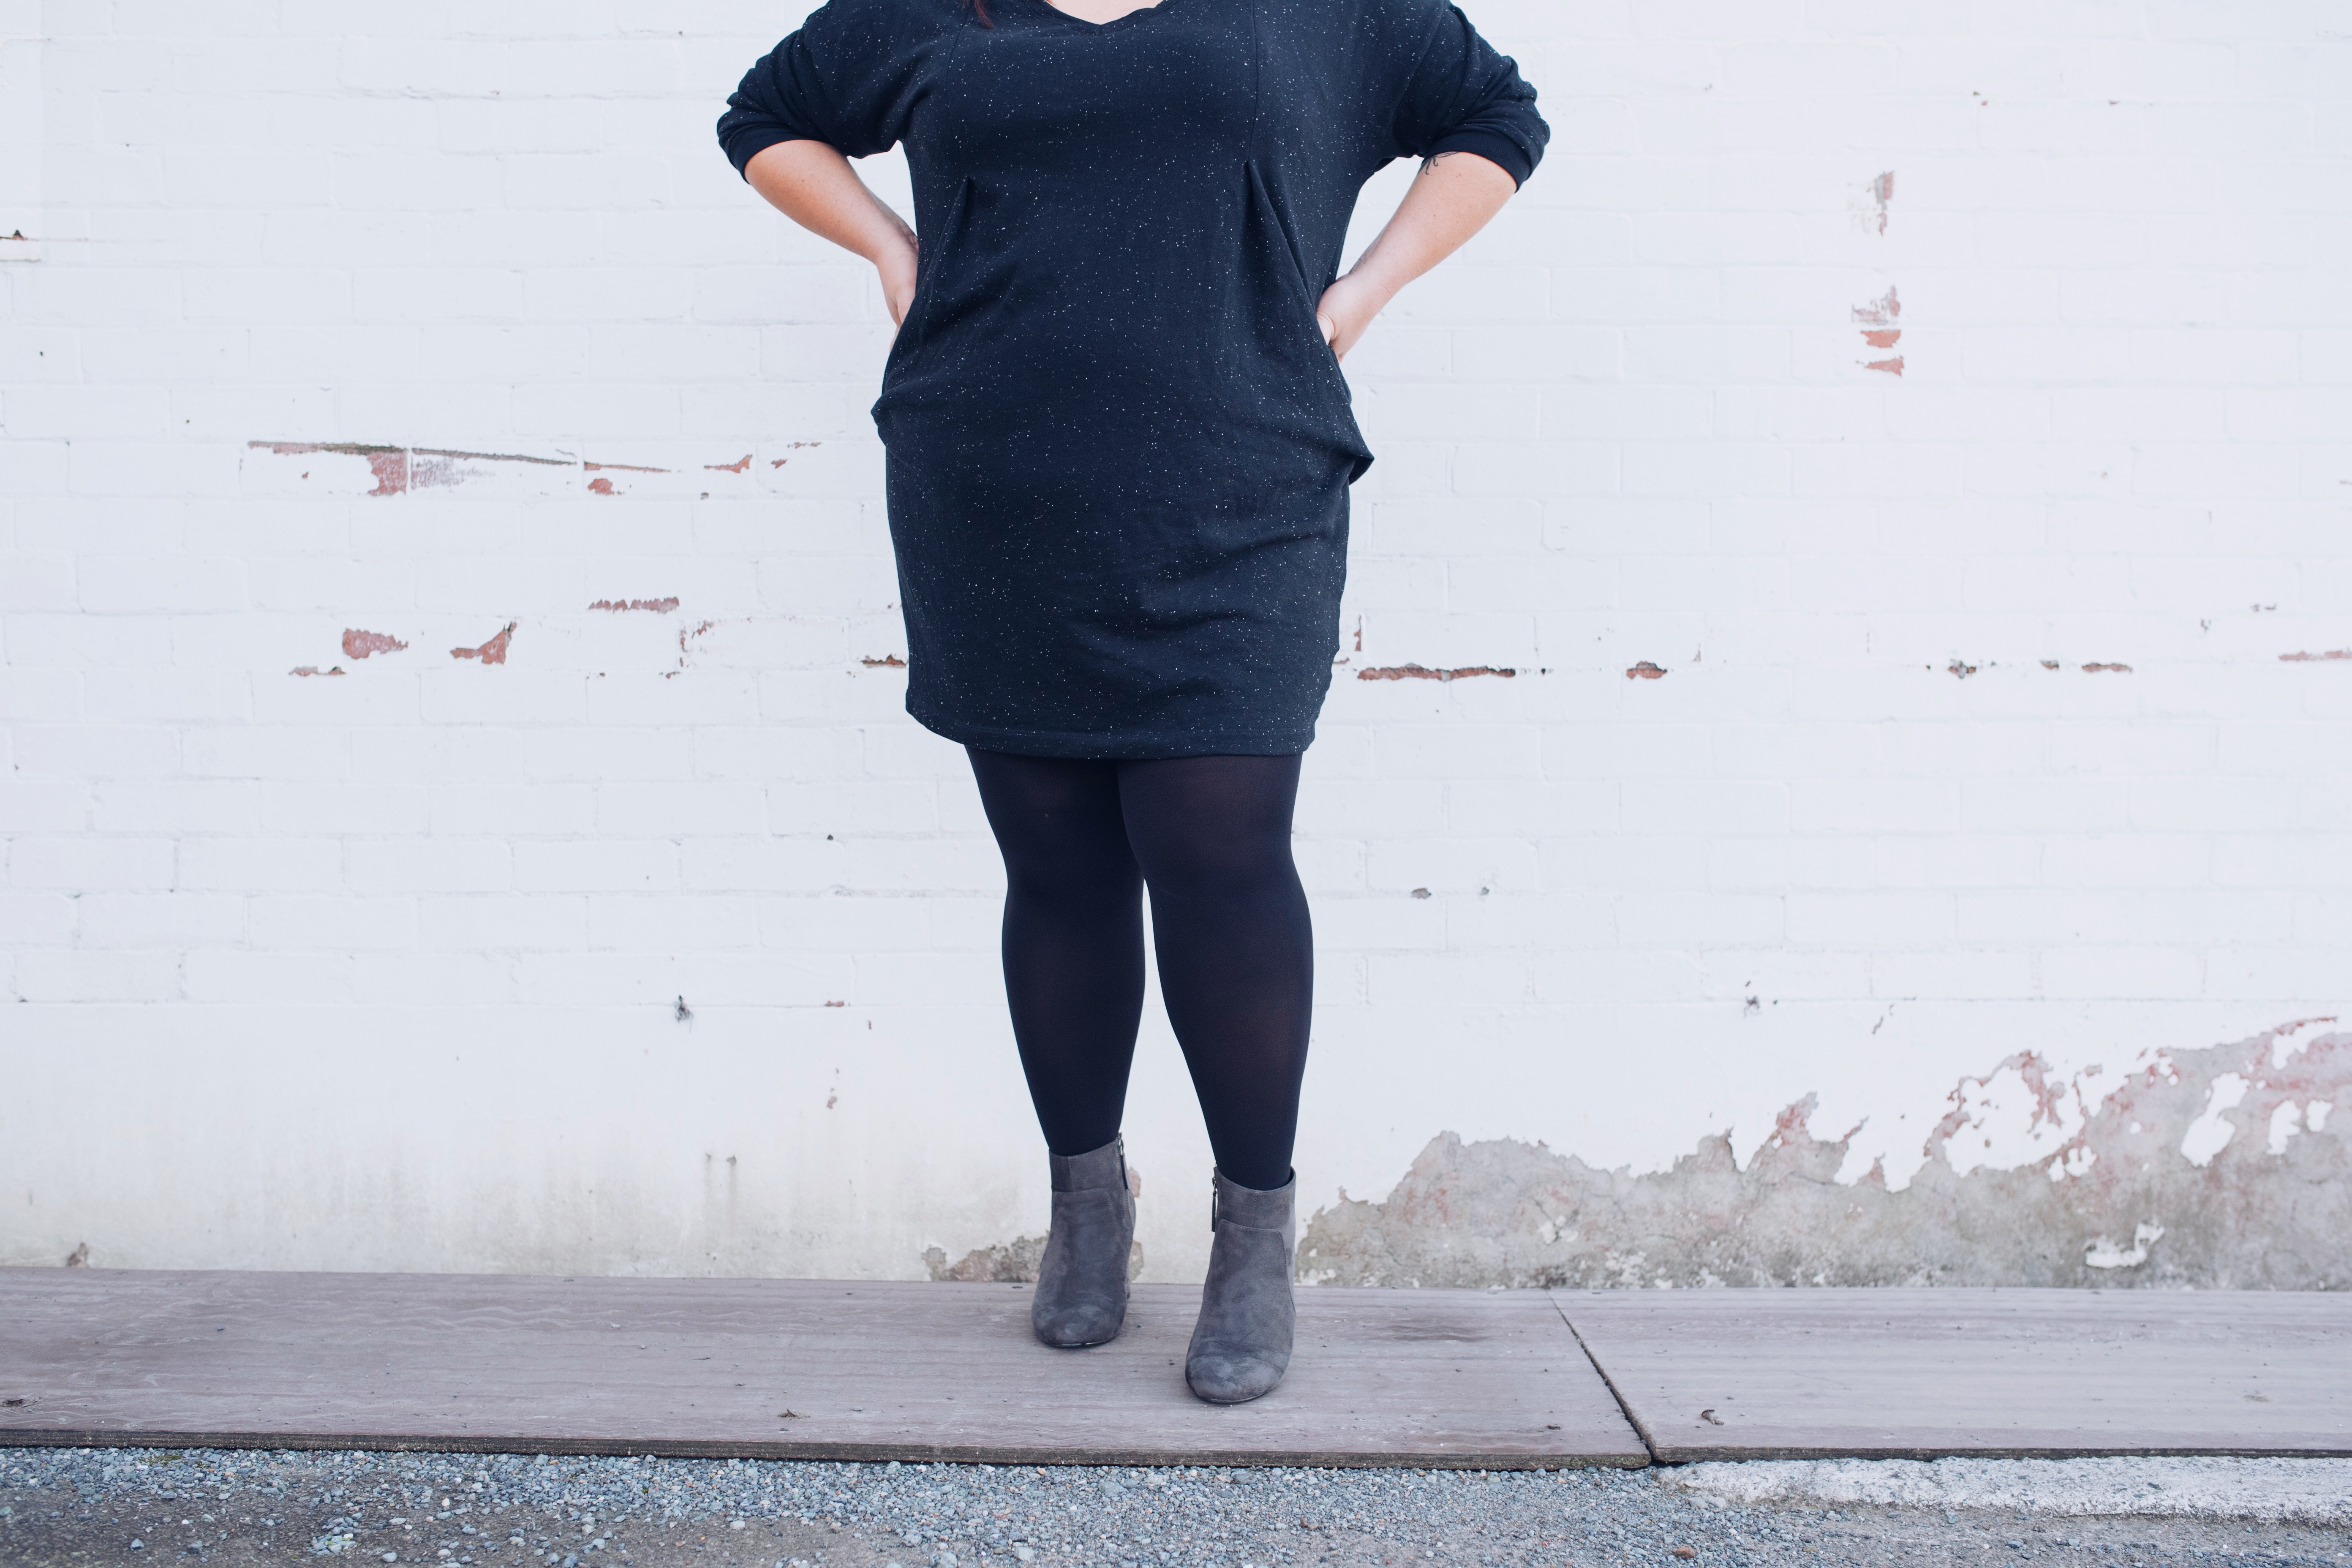 Boots, Tights, Dress: Winter Style - Suger Coat It